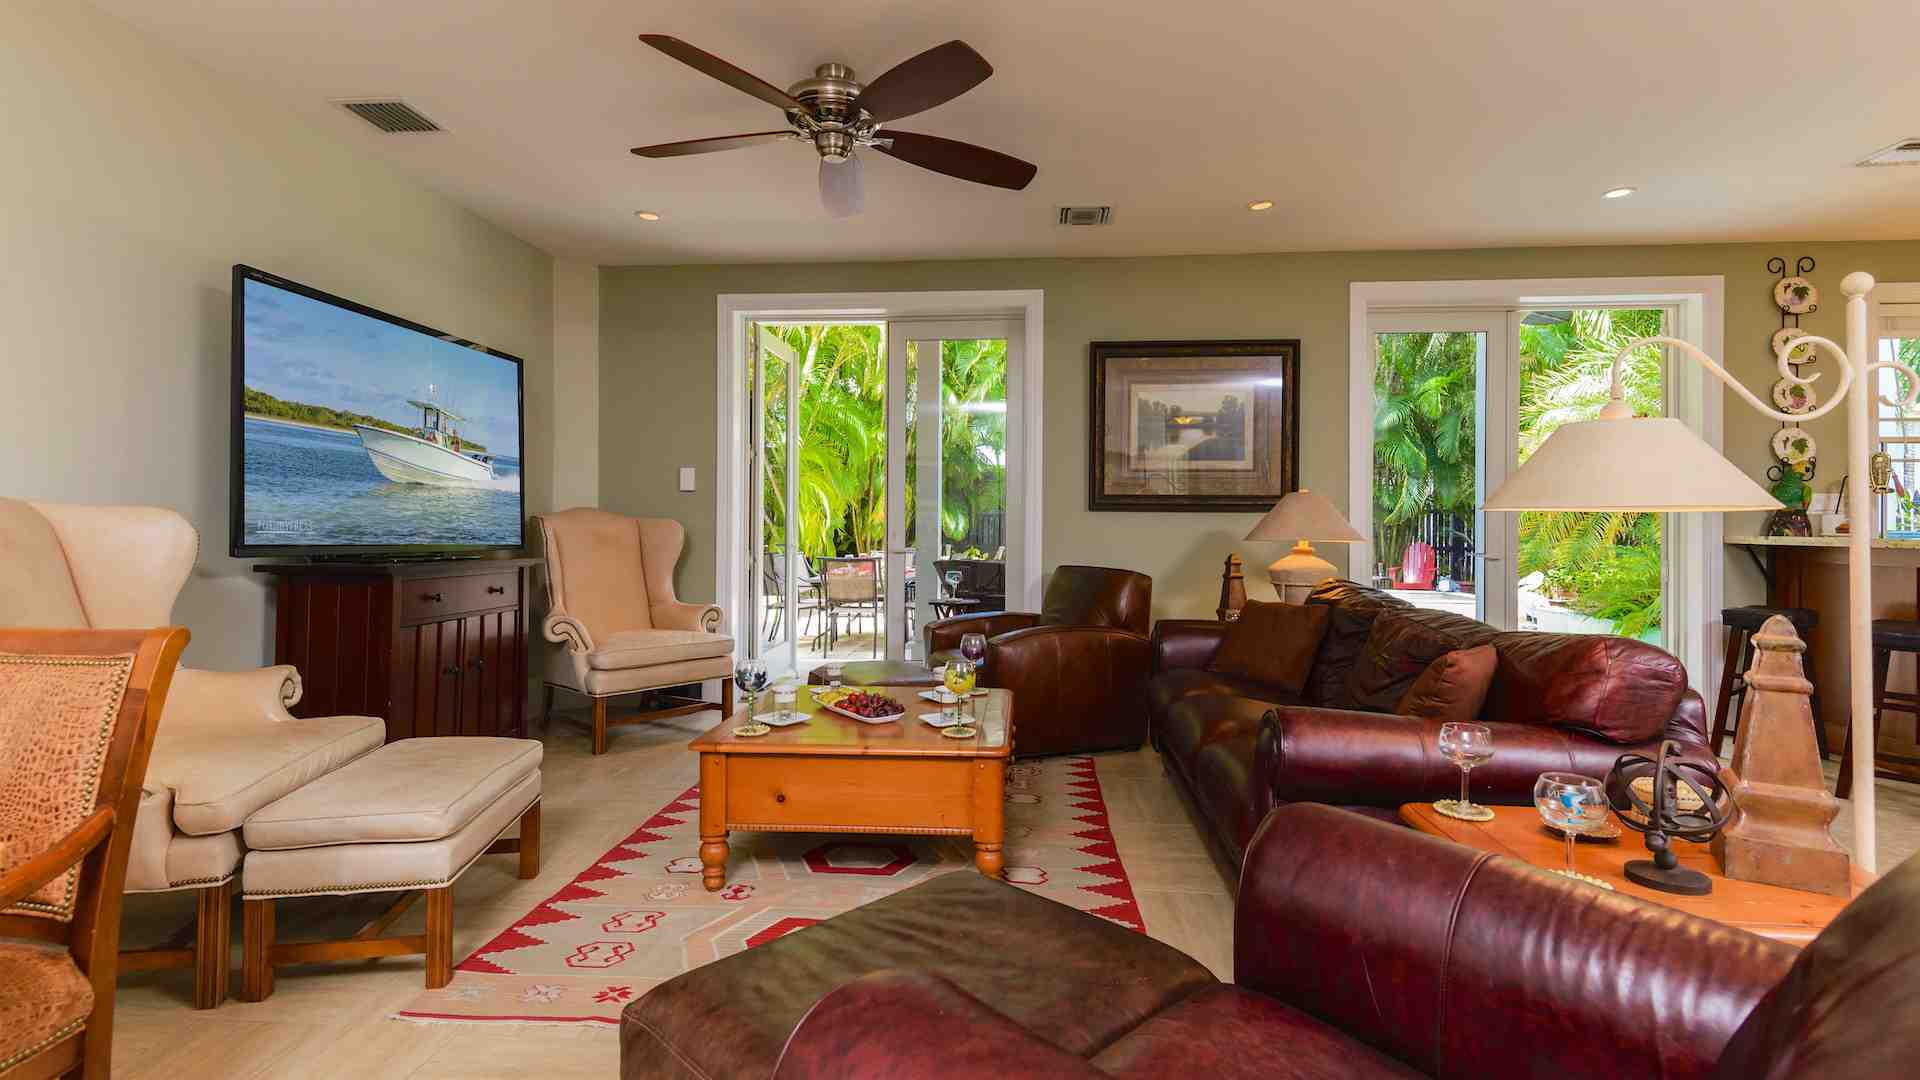 The main living area has several plush seating options including a leather couch...